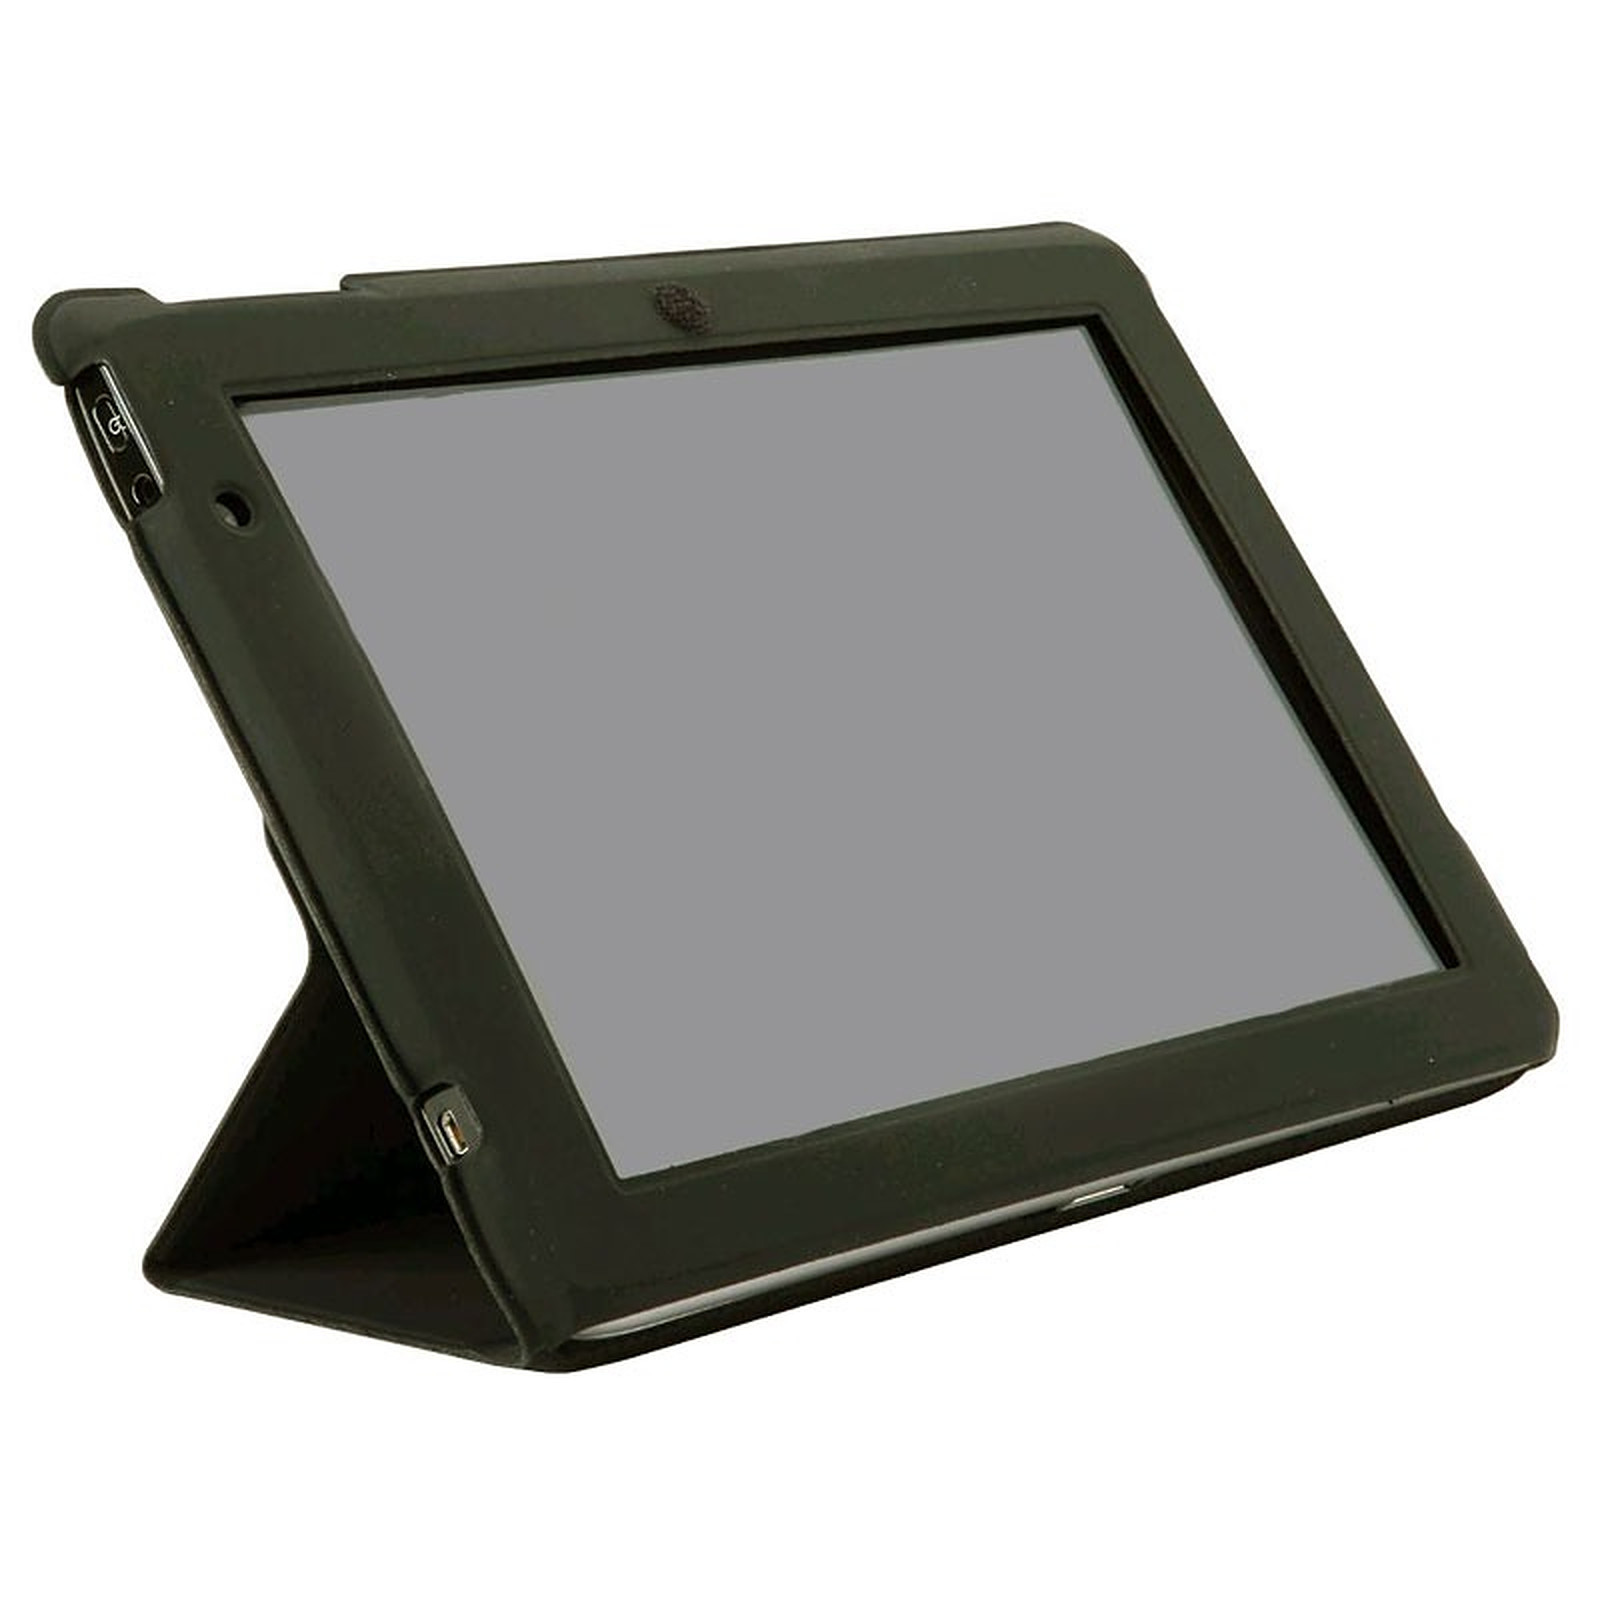 Acer Iconia Tab A500 Protective Case